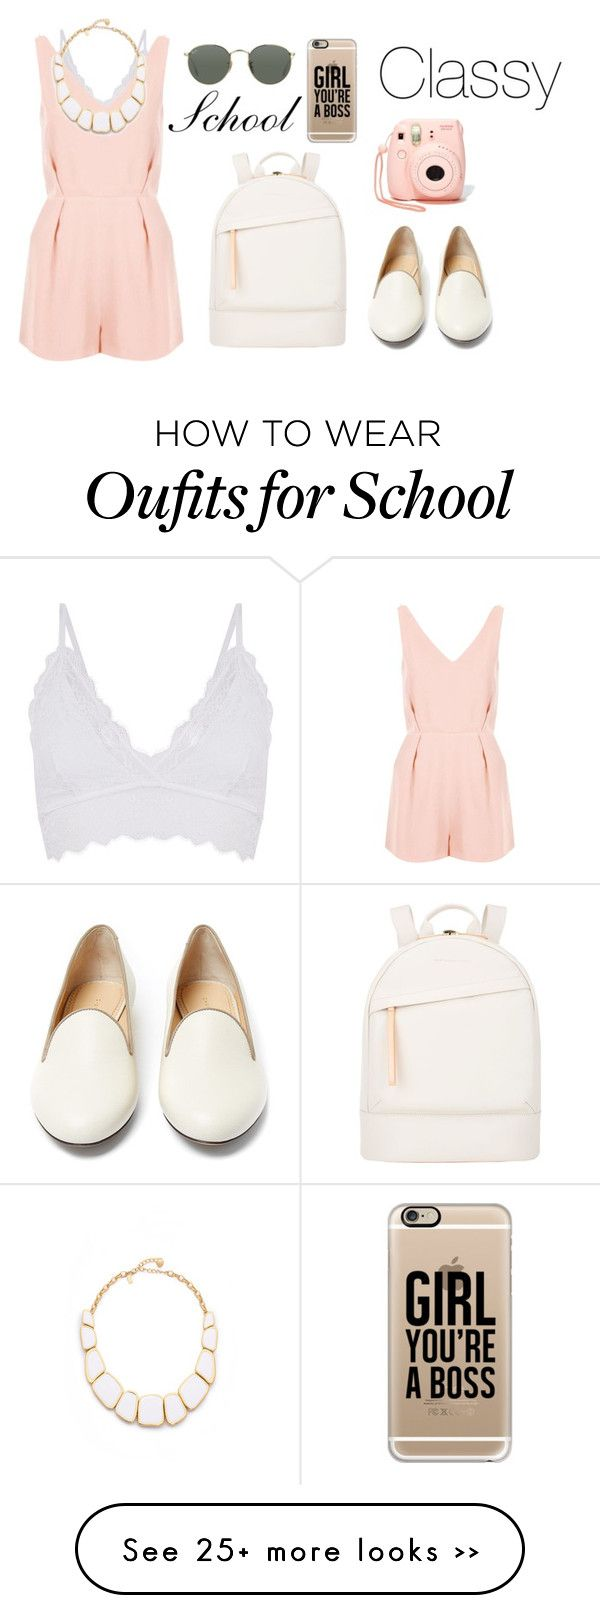 """back to school in pretty style"" by diana2579 on Polyvore featuring Topshop, Kate Spade, Want Les Essentiels de la Vie, Ray-Ban, Nasty Gal, Charlotte Olympia and Casetify"